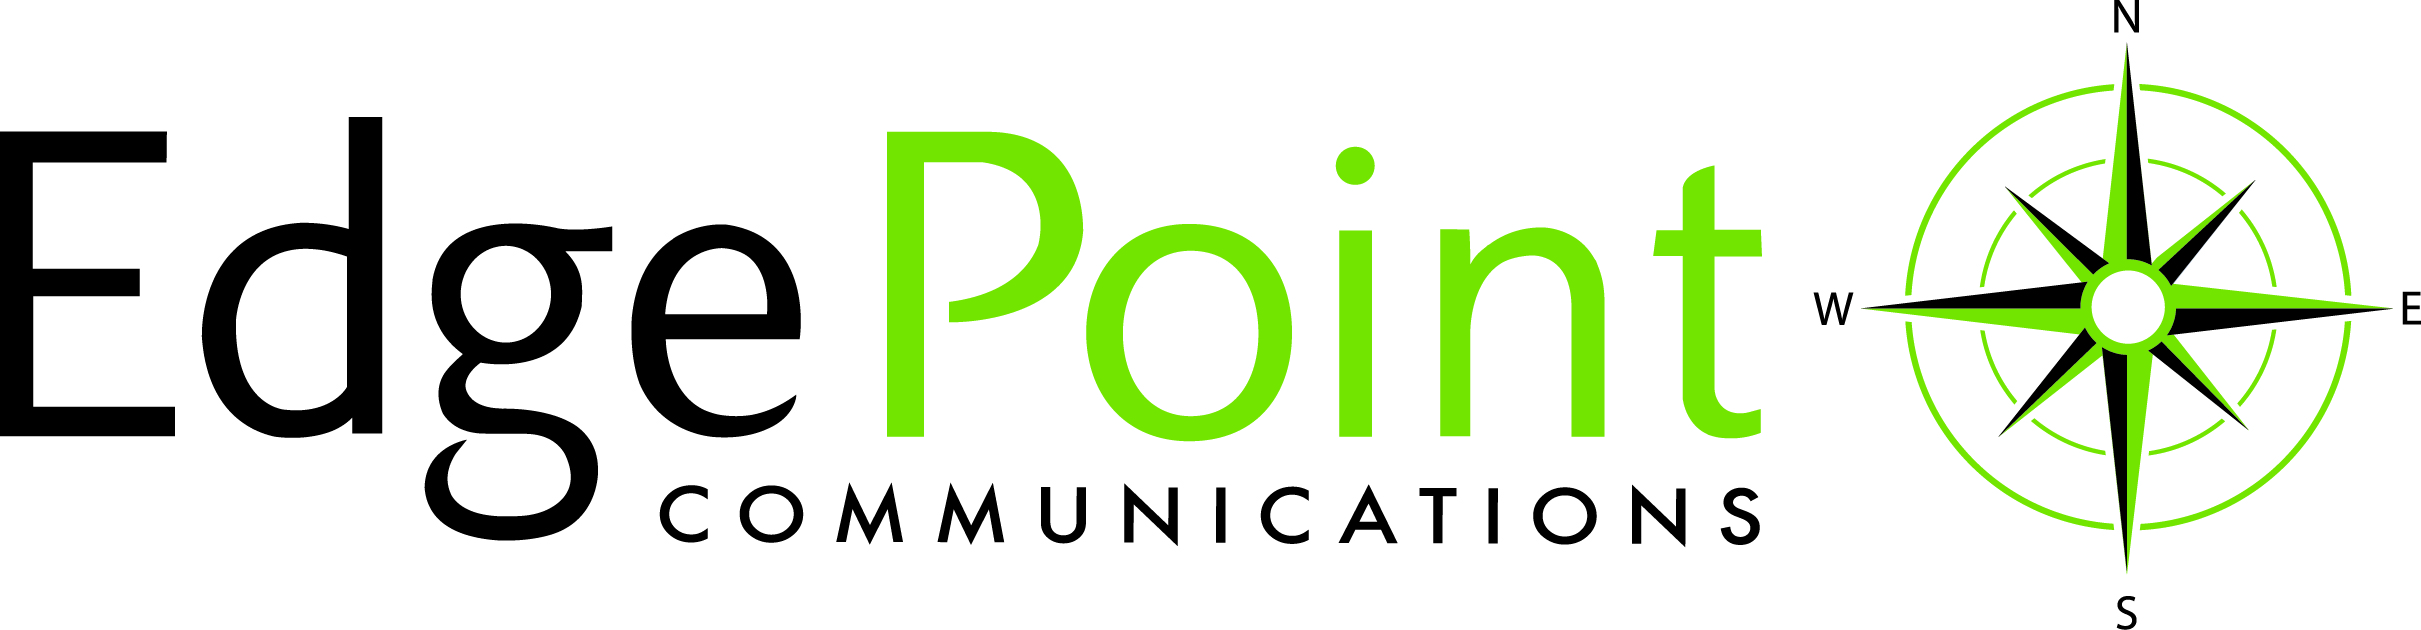 Edge Point Communications